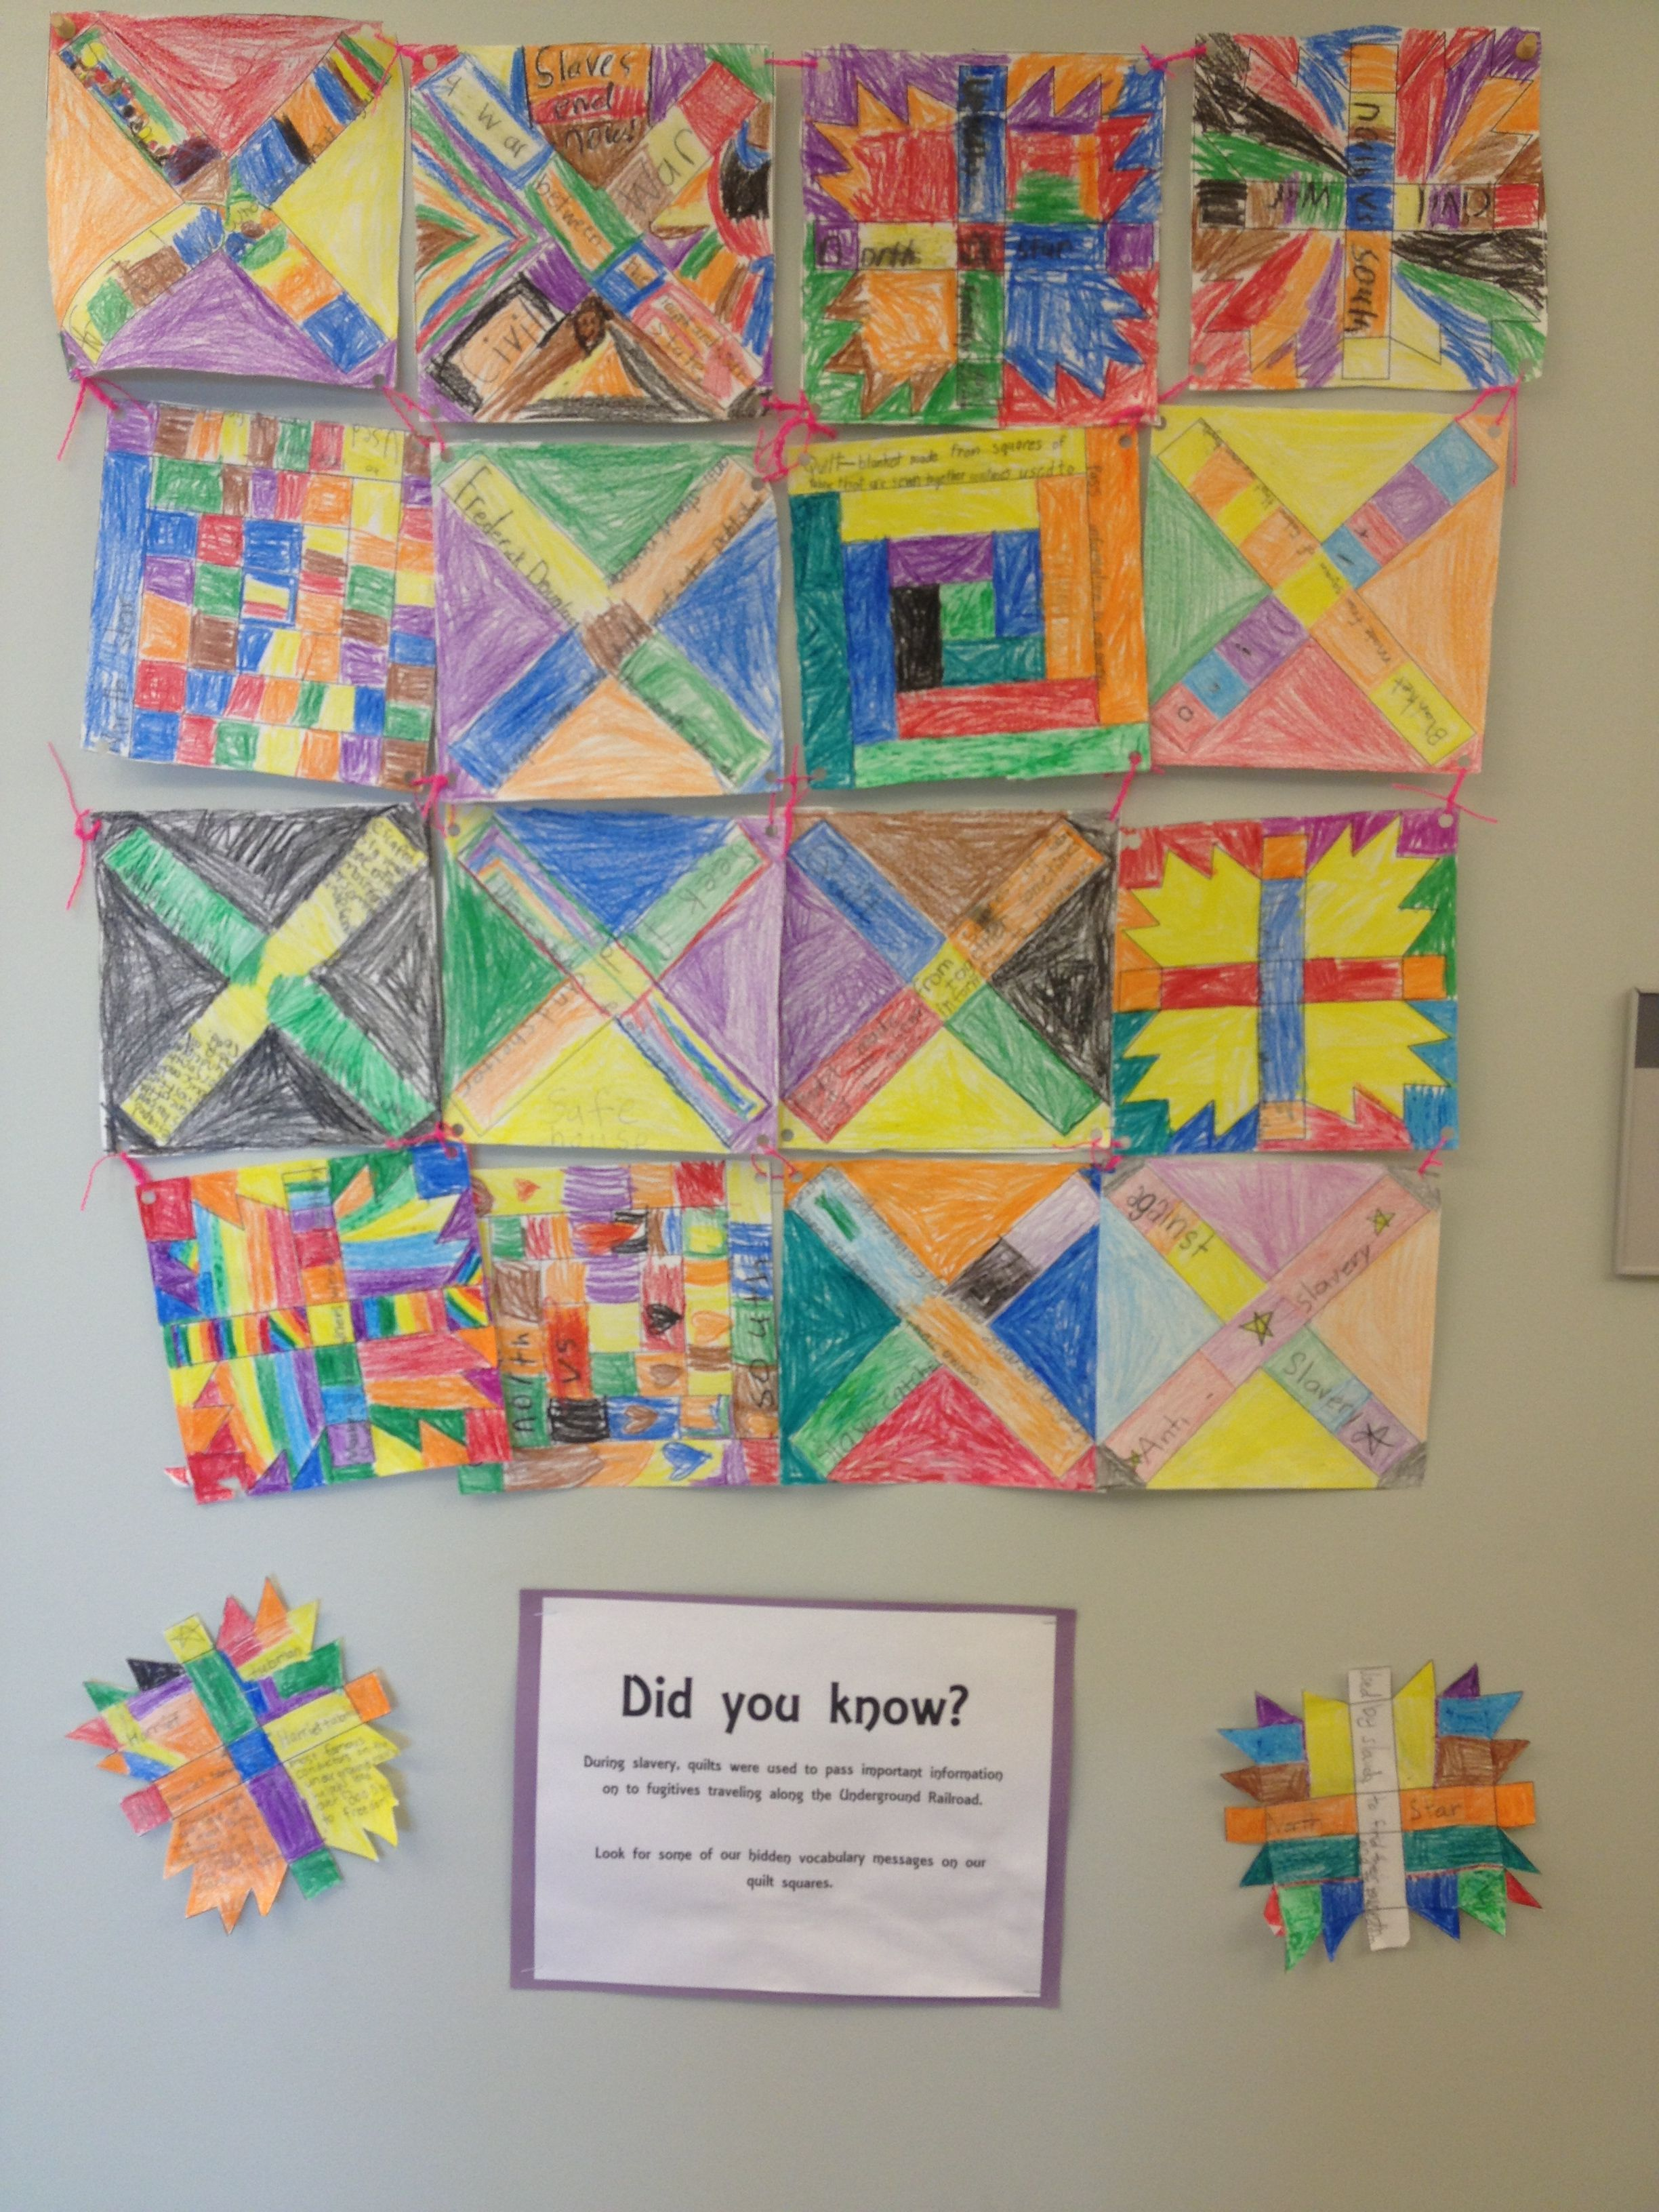 A Black History Month Project Where Kids Design A Quilt